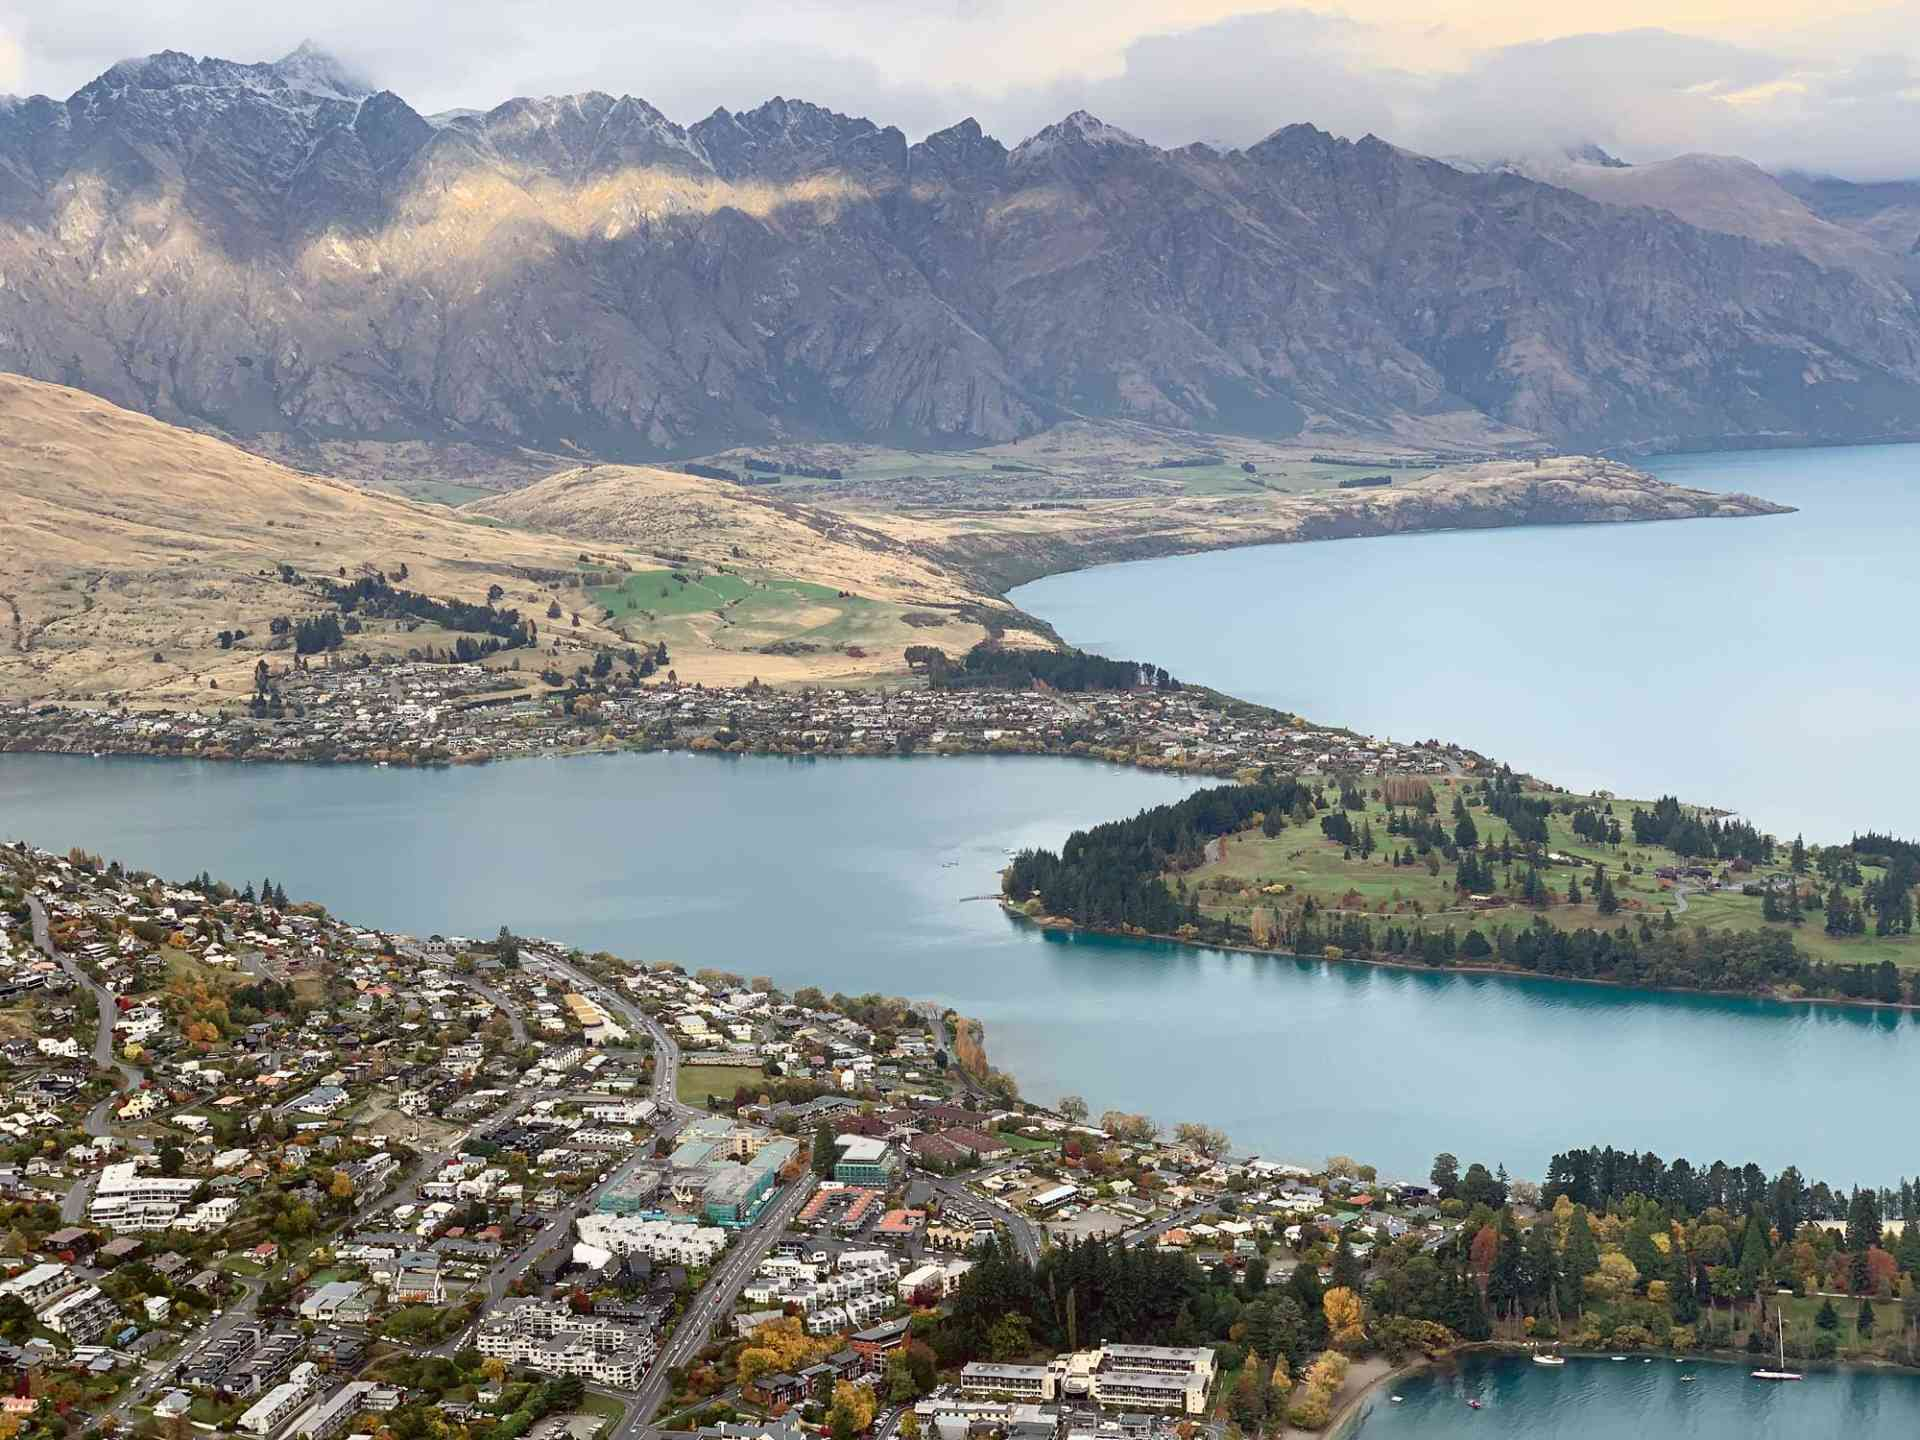 Queenstown, New Zealand by Carly De Blasio